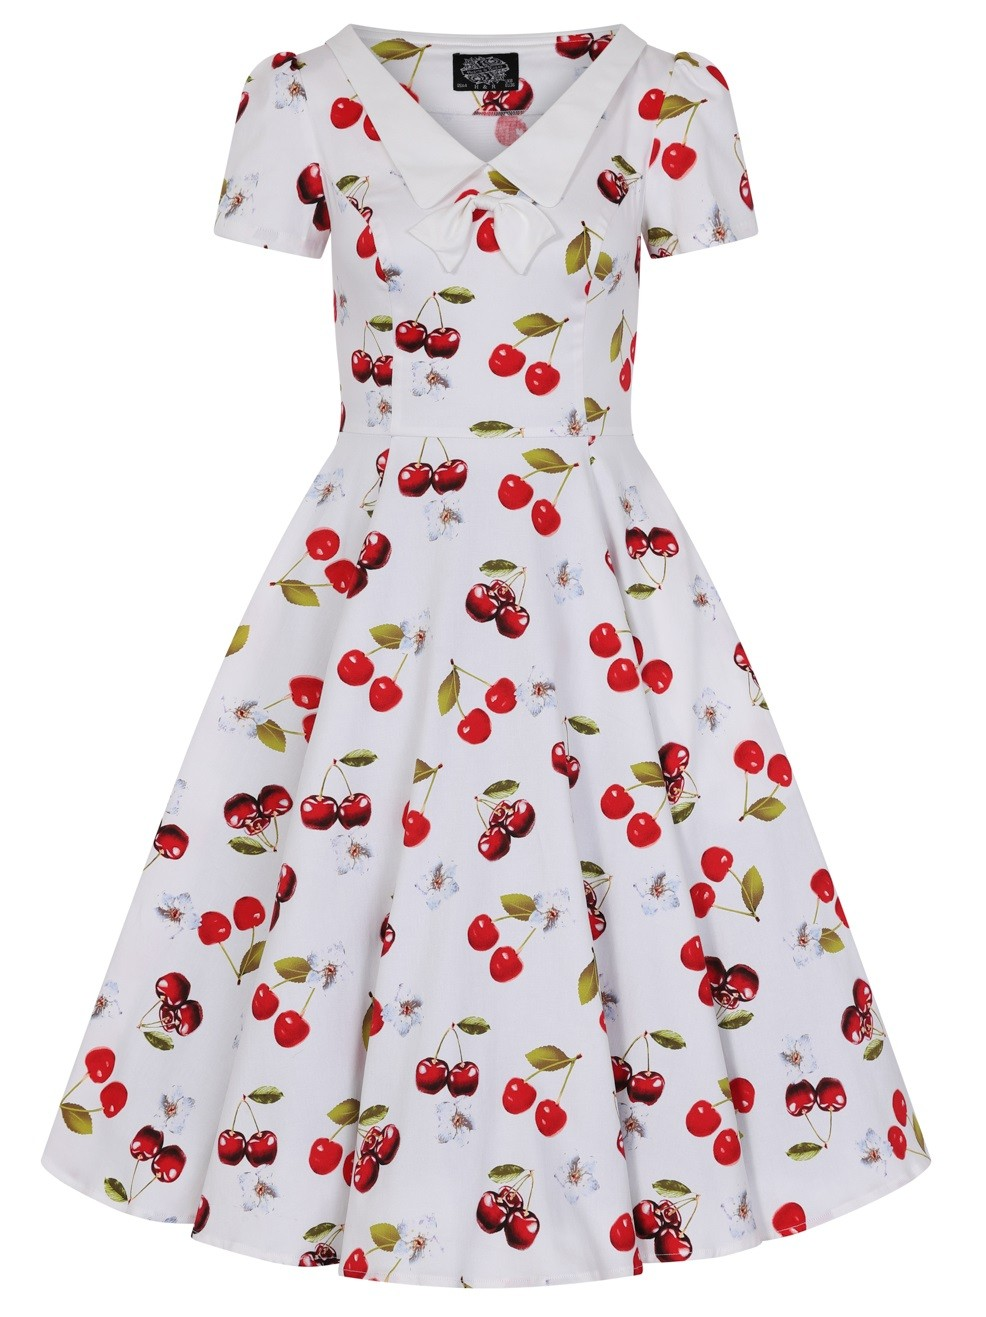 H&R London Cherry-on-Top Dress